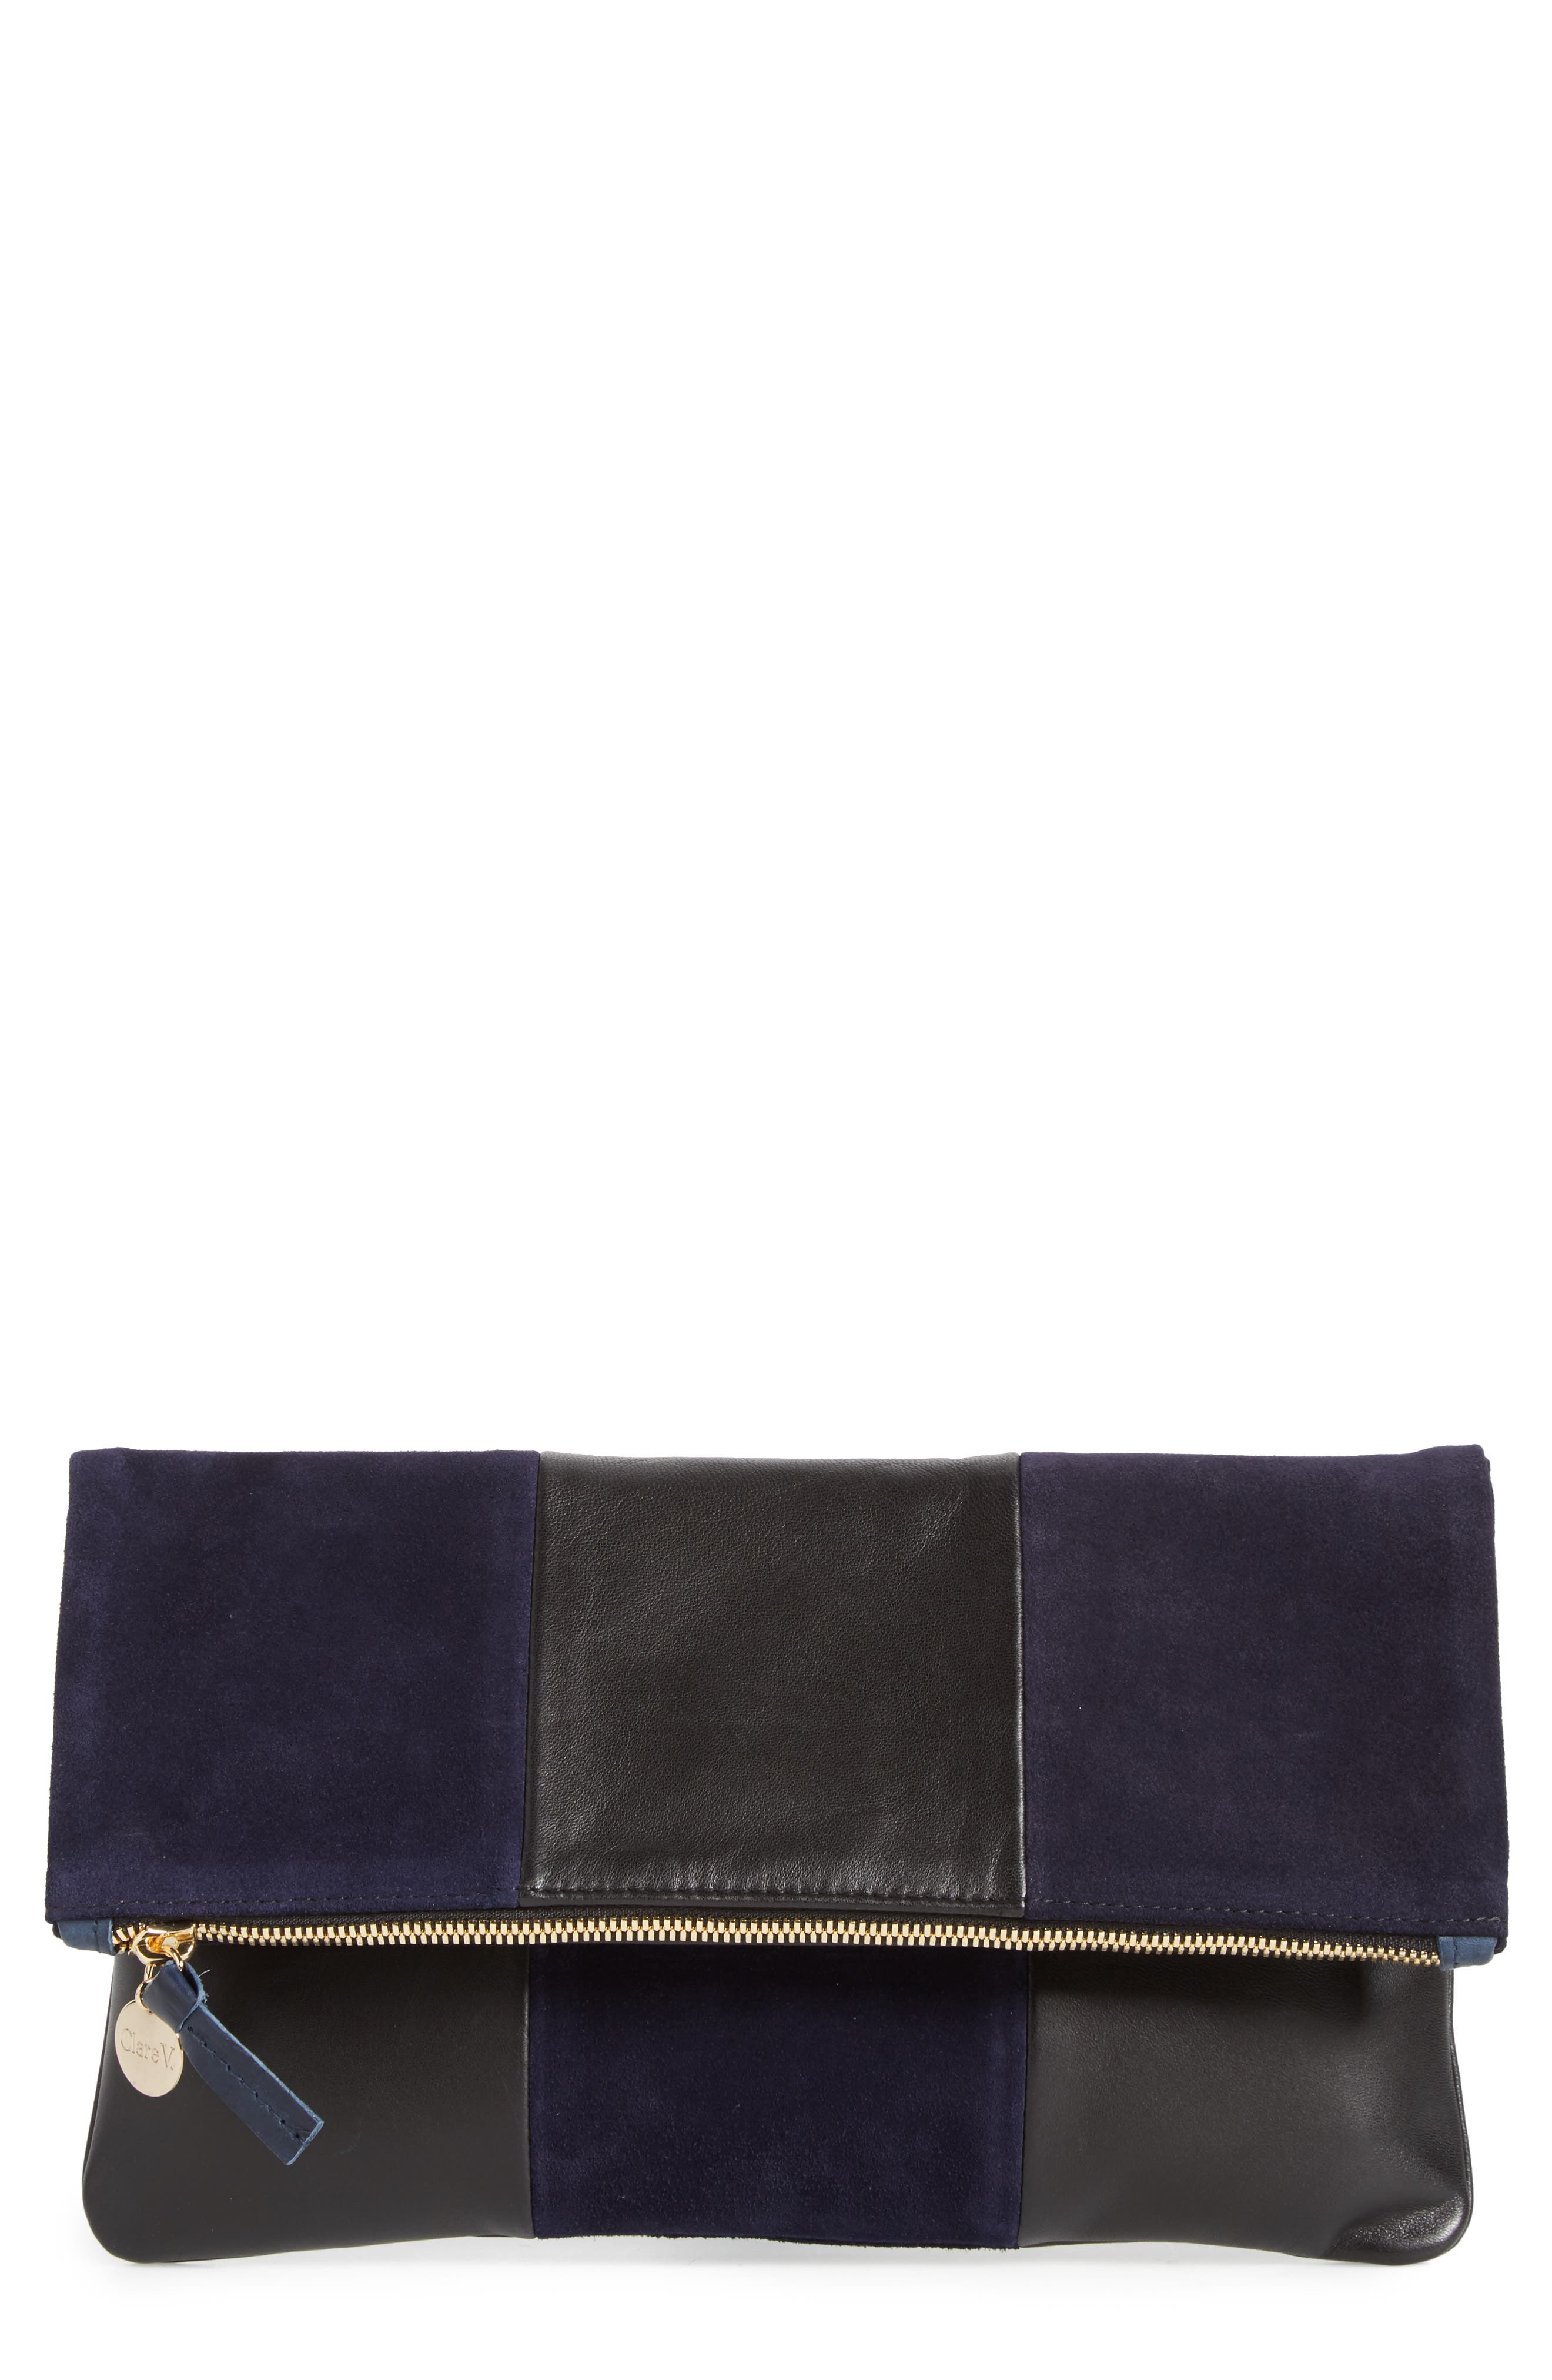 Leather & Suede Foldover Clutch,                         Main,                         color, 001